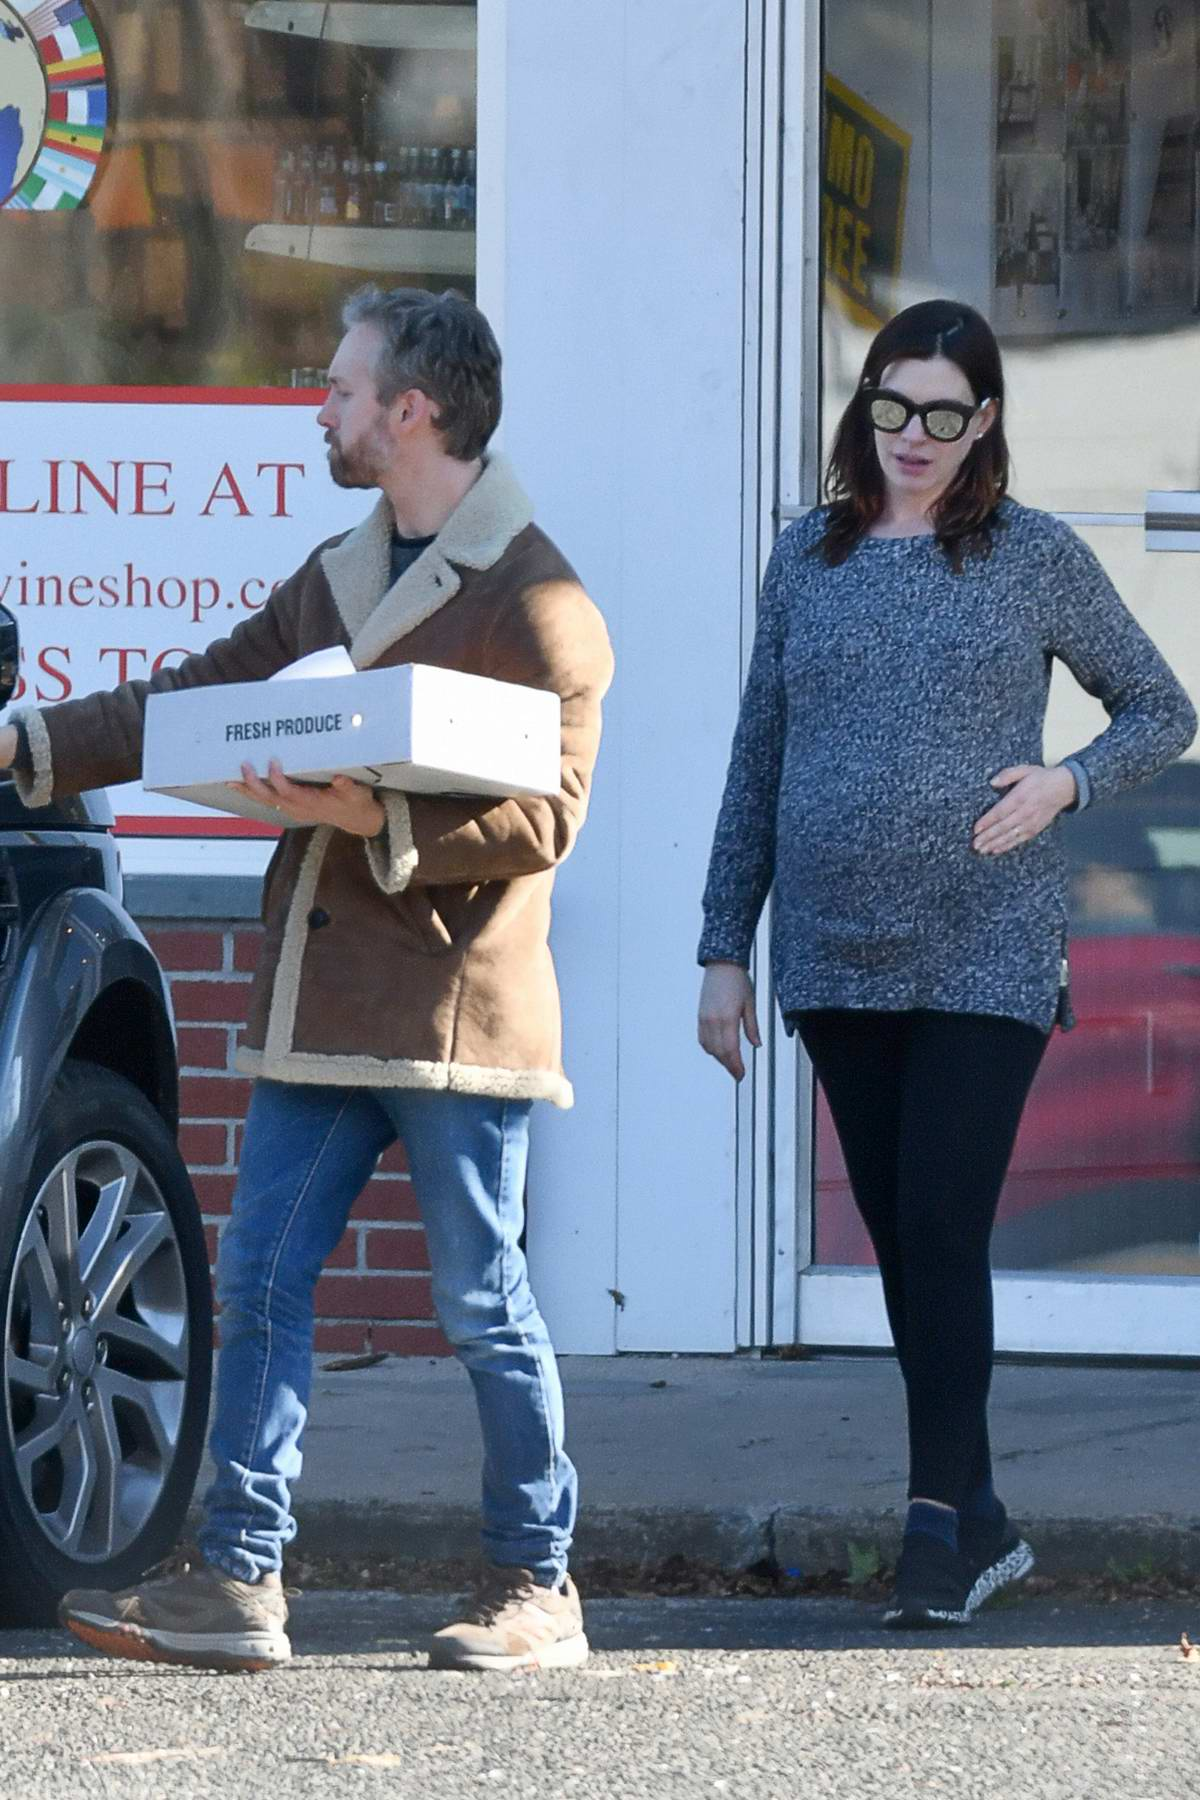 Anne Hathaway cradles her growing baby bump while out with husband Adam Shulman in Westport, Connecticut